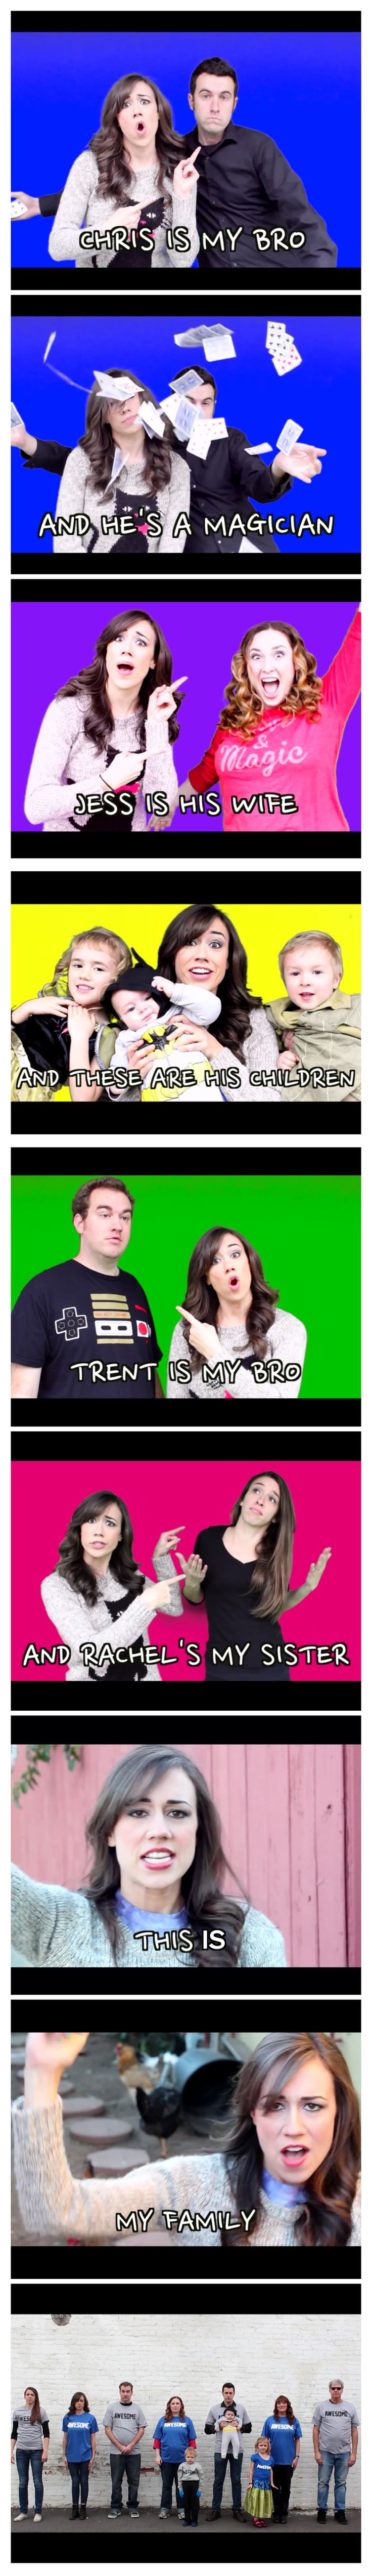 Love this video go watch it right now look up my family music video colleen ballinger. Let me know if u watched it -Jodie